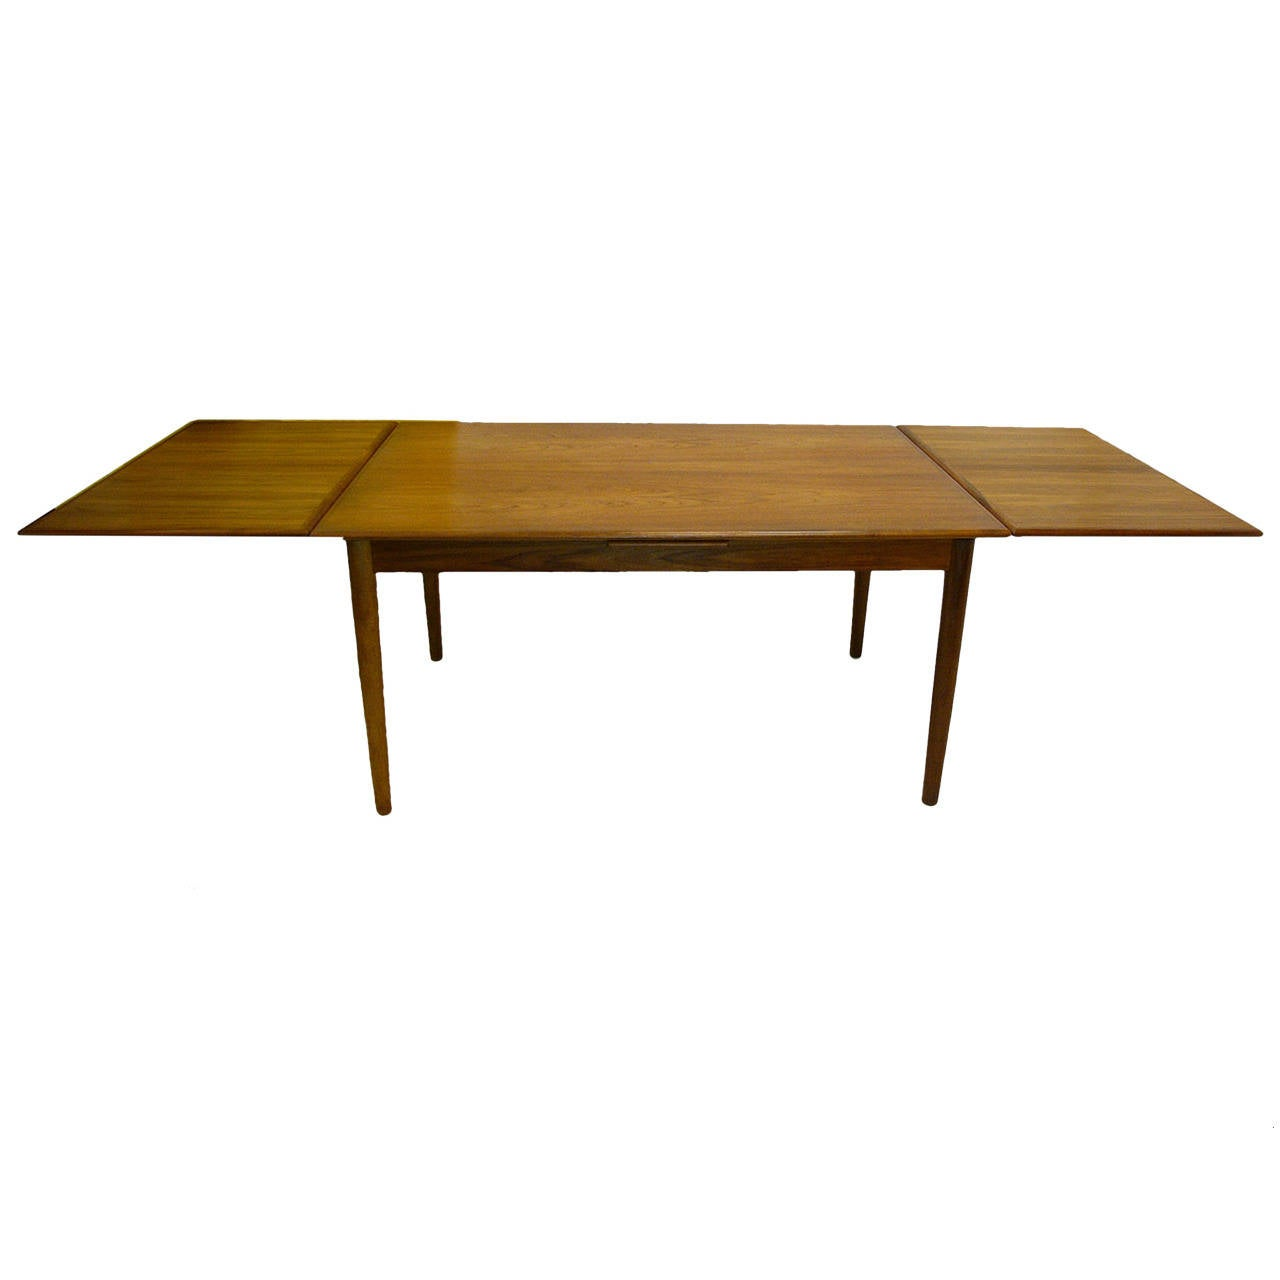 Danish teak extension dining table at 1stdibs for Dining room extension tables